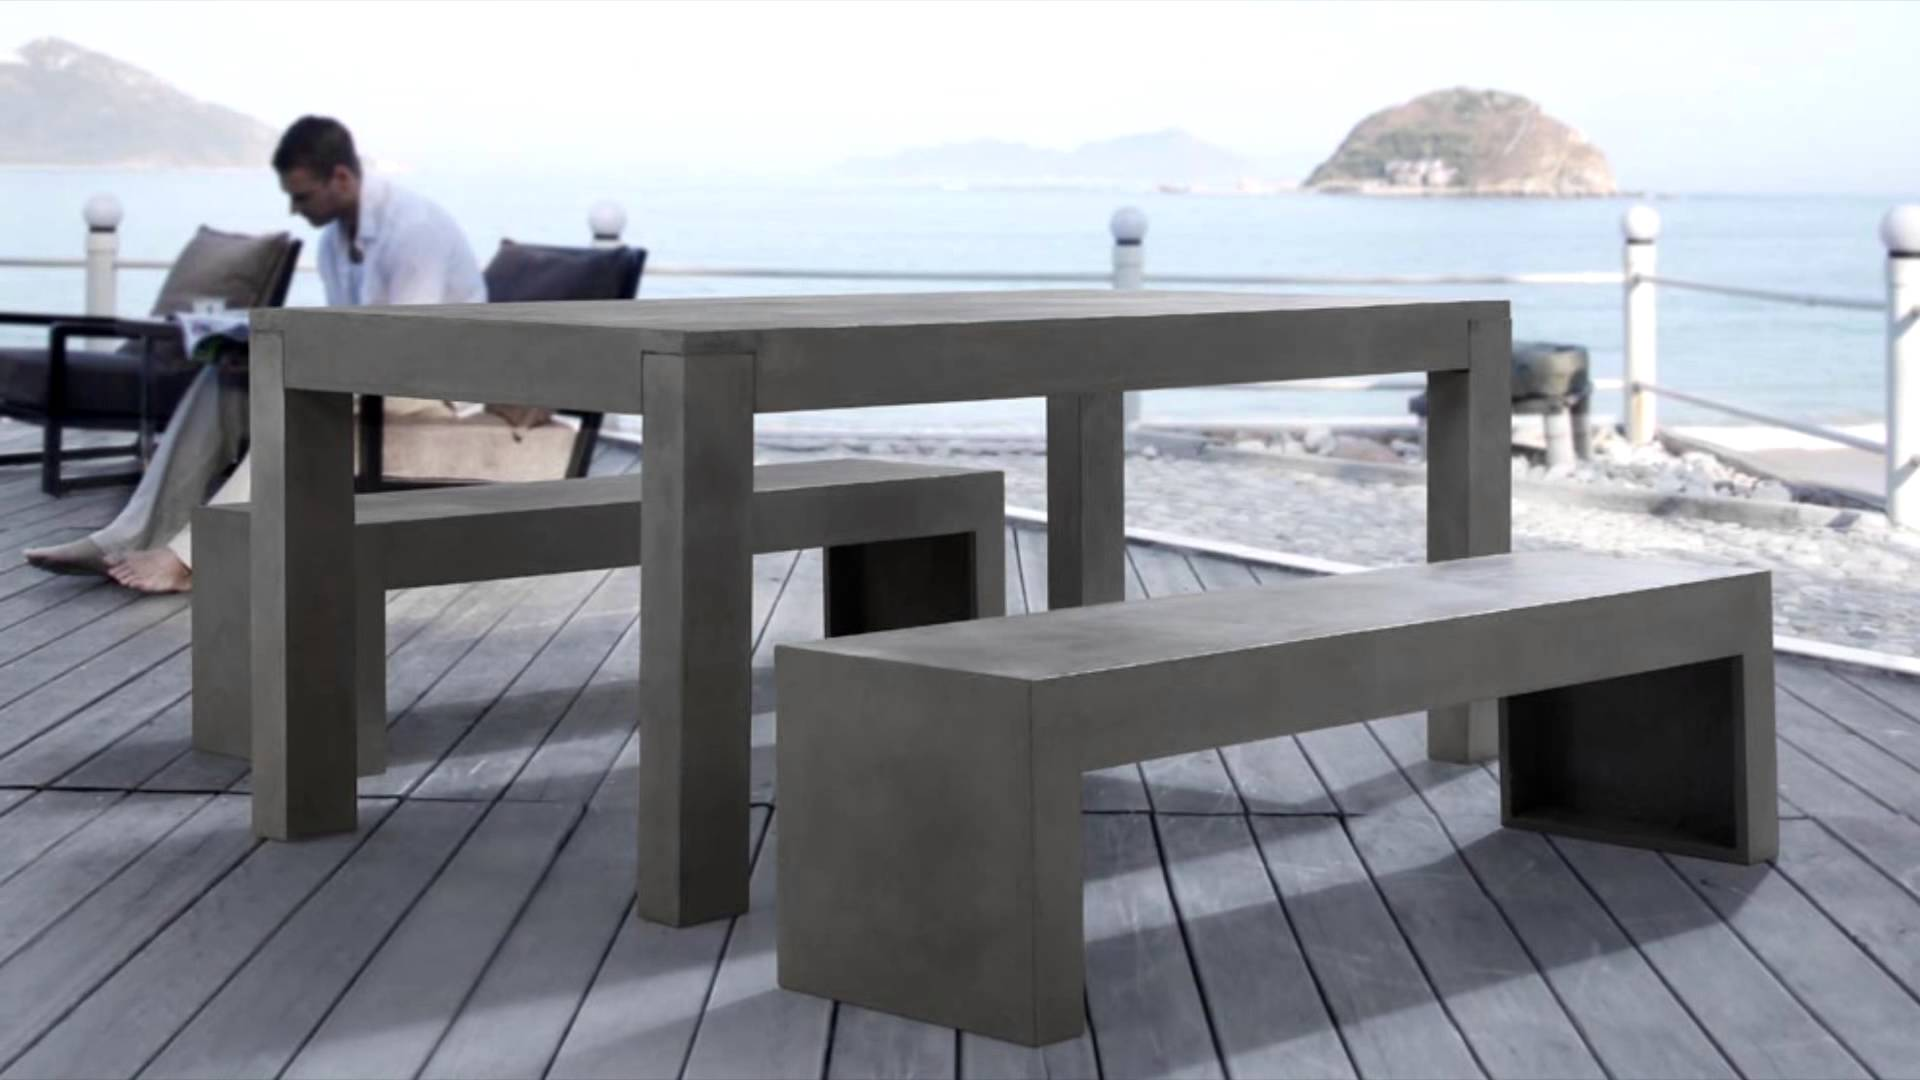 maxresdefault - Garden Furniture 2015 Uk